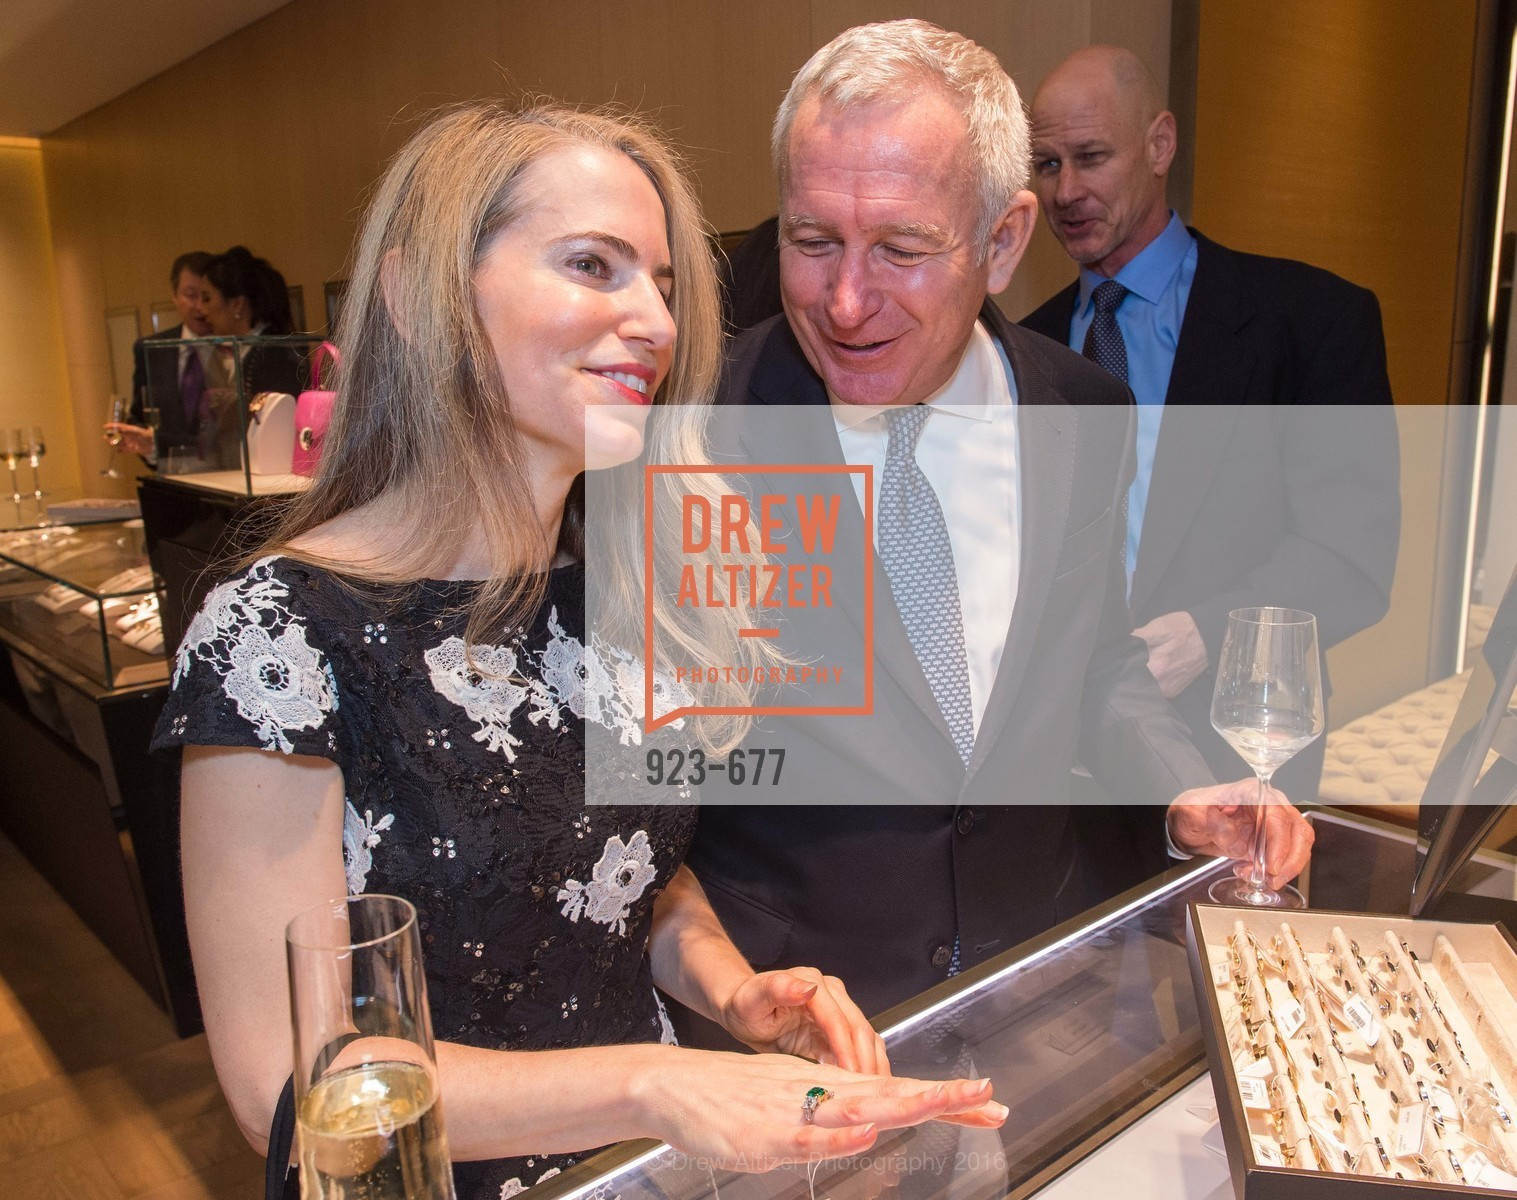 Nadine Weil, Glenn McCoy, Bulgari Hosts The 2016 Ballet Gala Patrons Party, Bulgari. 200 Stockton st, January 7th, 2016,Drew Altizer, Drew Altizer Photography, full-service agency, private events, San Francisco photographer, photographer california